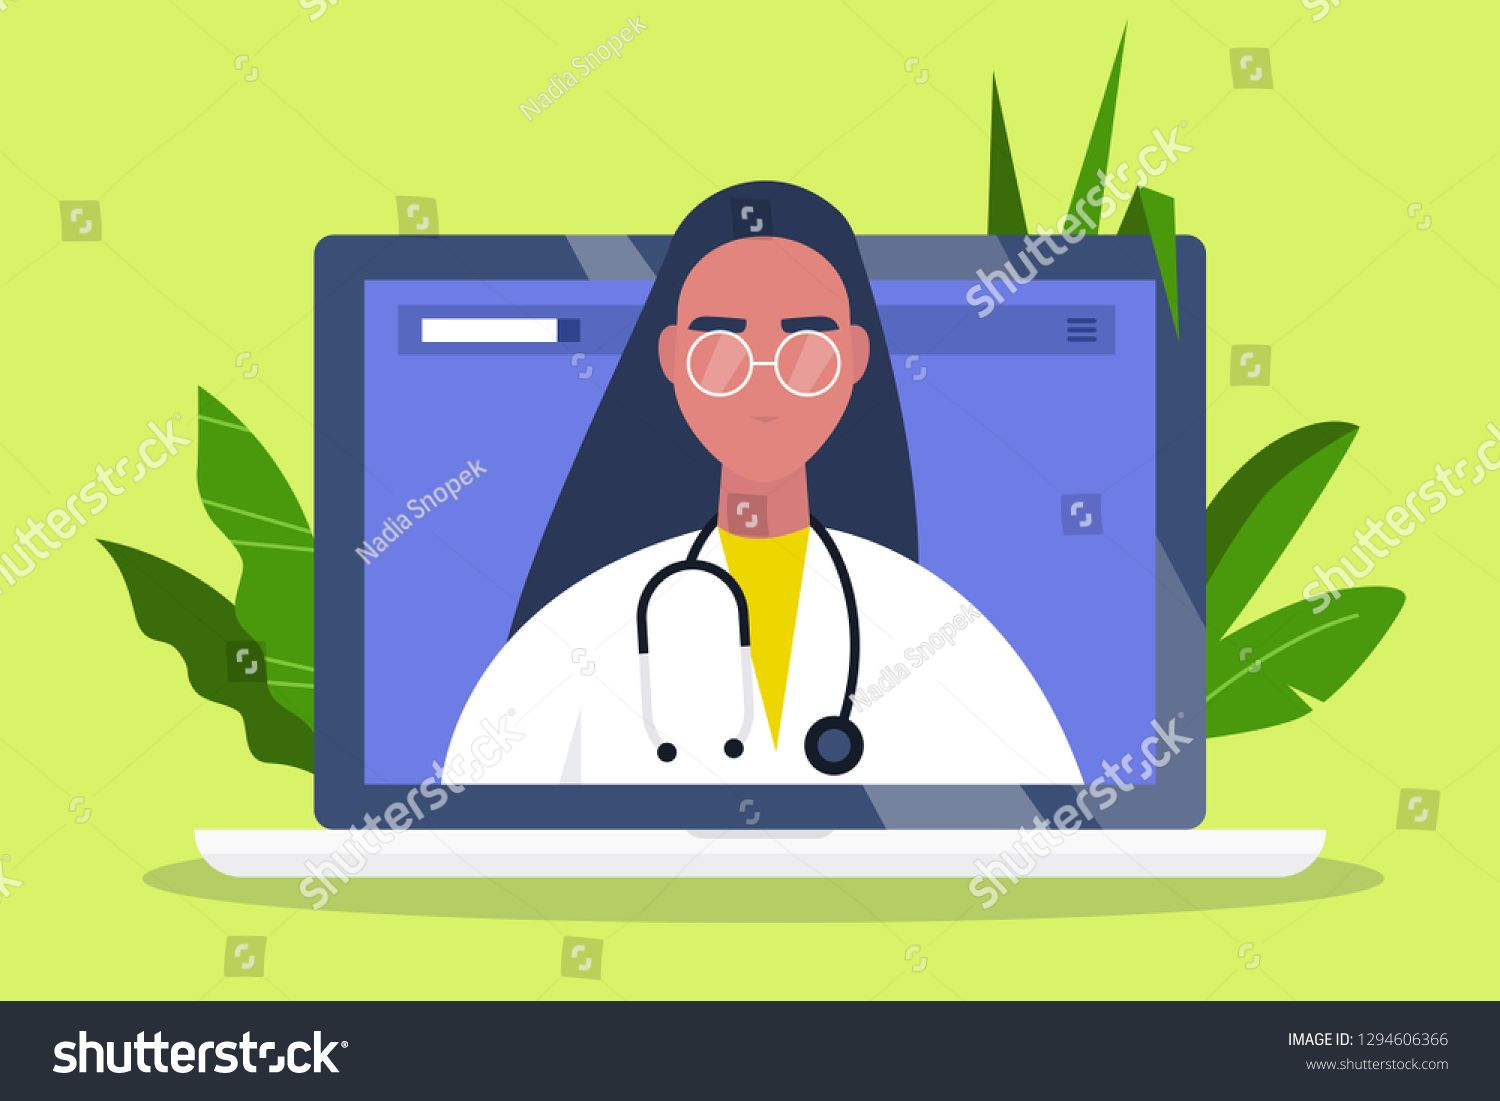 Doctor Appointment Online Consultation Modern Healthcare Technologies Hospital Millennial Female T In 2020 Doctor Appointment Healthcare Technology Modern Hospital